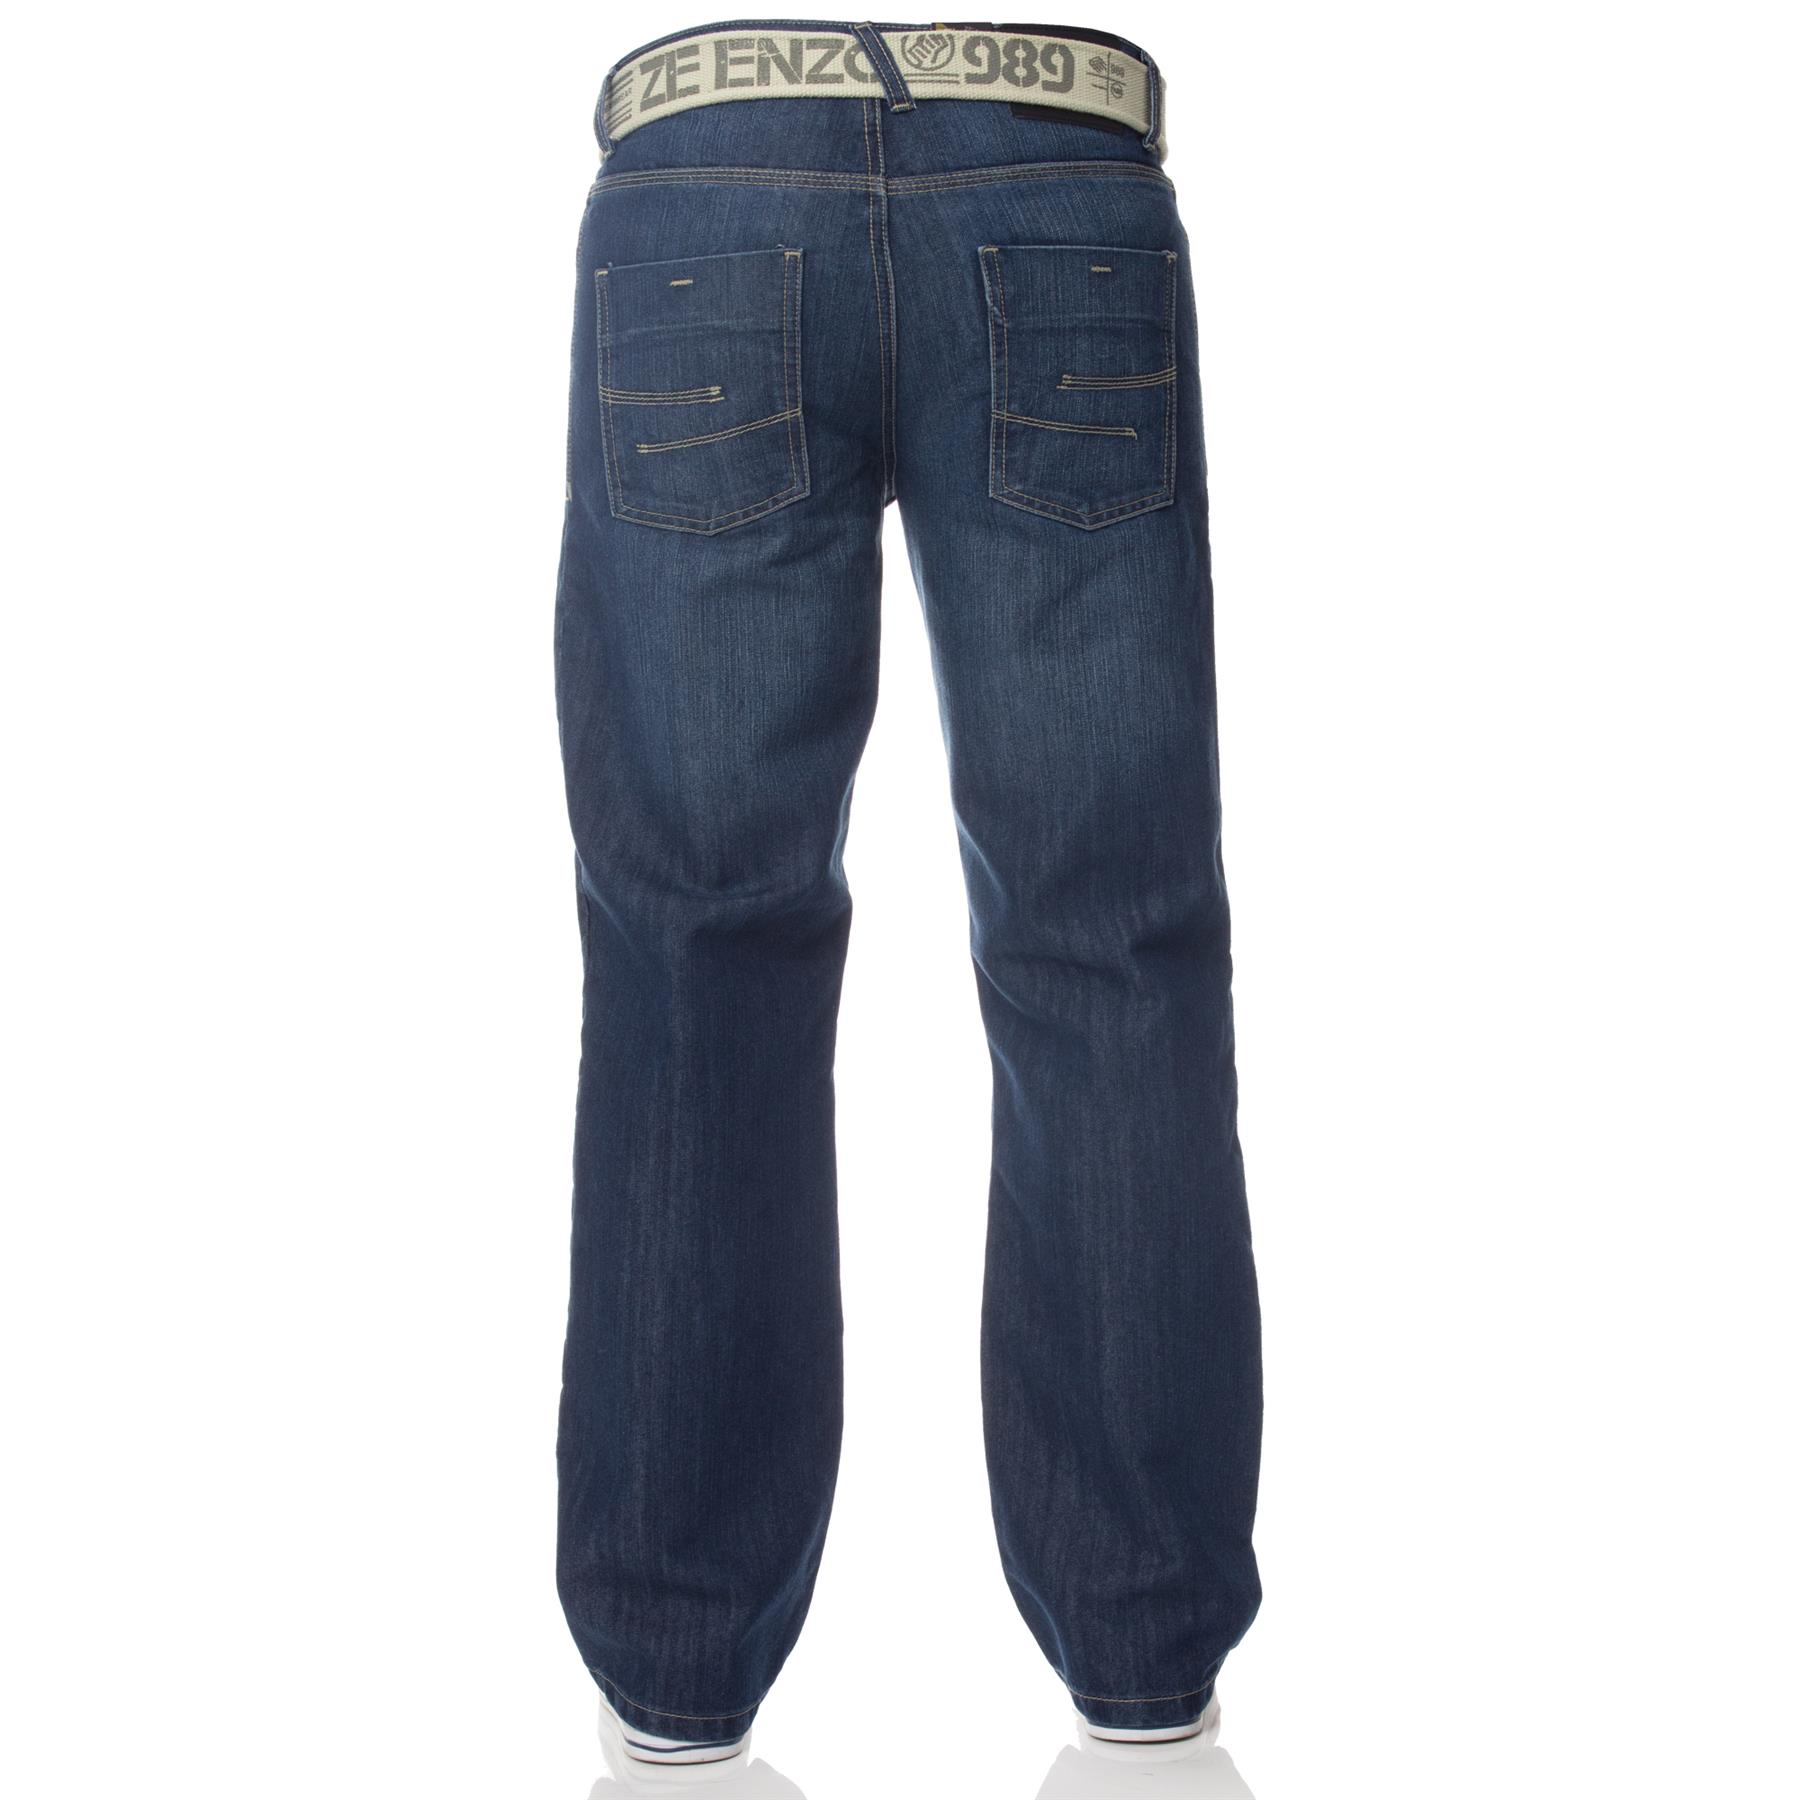 Enzo-Mens-Jeans-Big-Tall-Leg-King-Size-Denim-Pants-Chino-Trousers-Waist-44-034-60-034 miniature 13